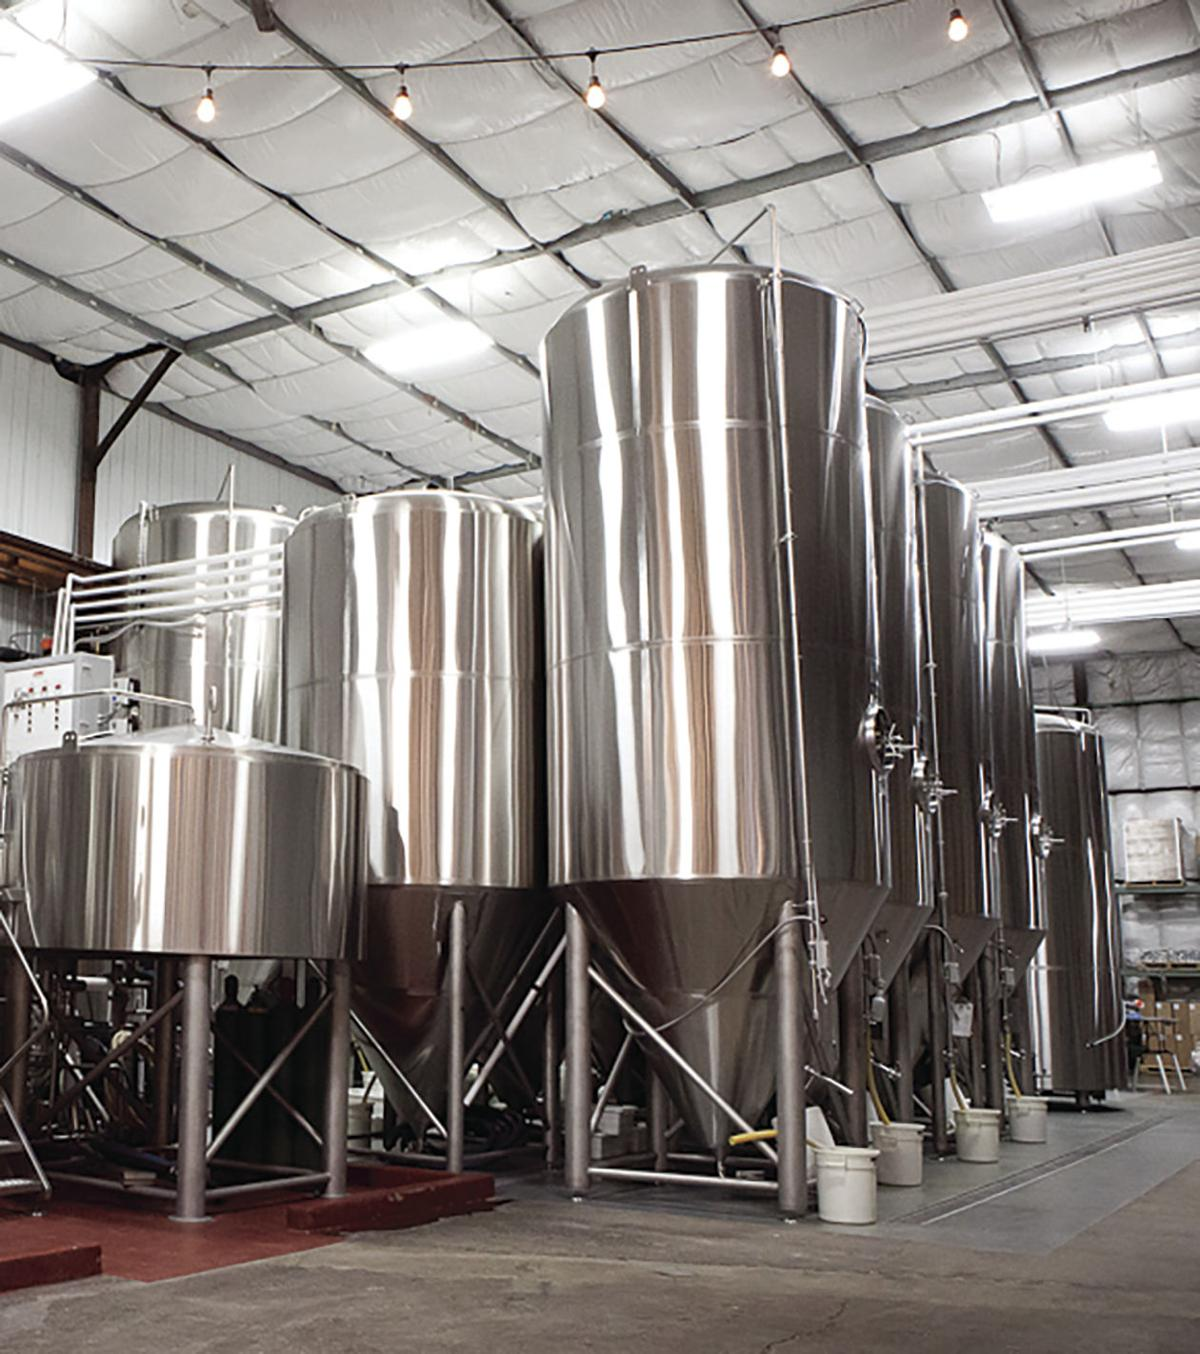 Craft brewing industry grows larger, better